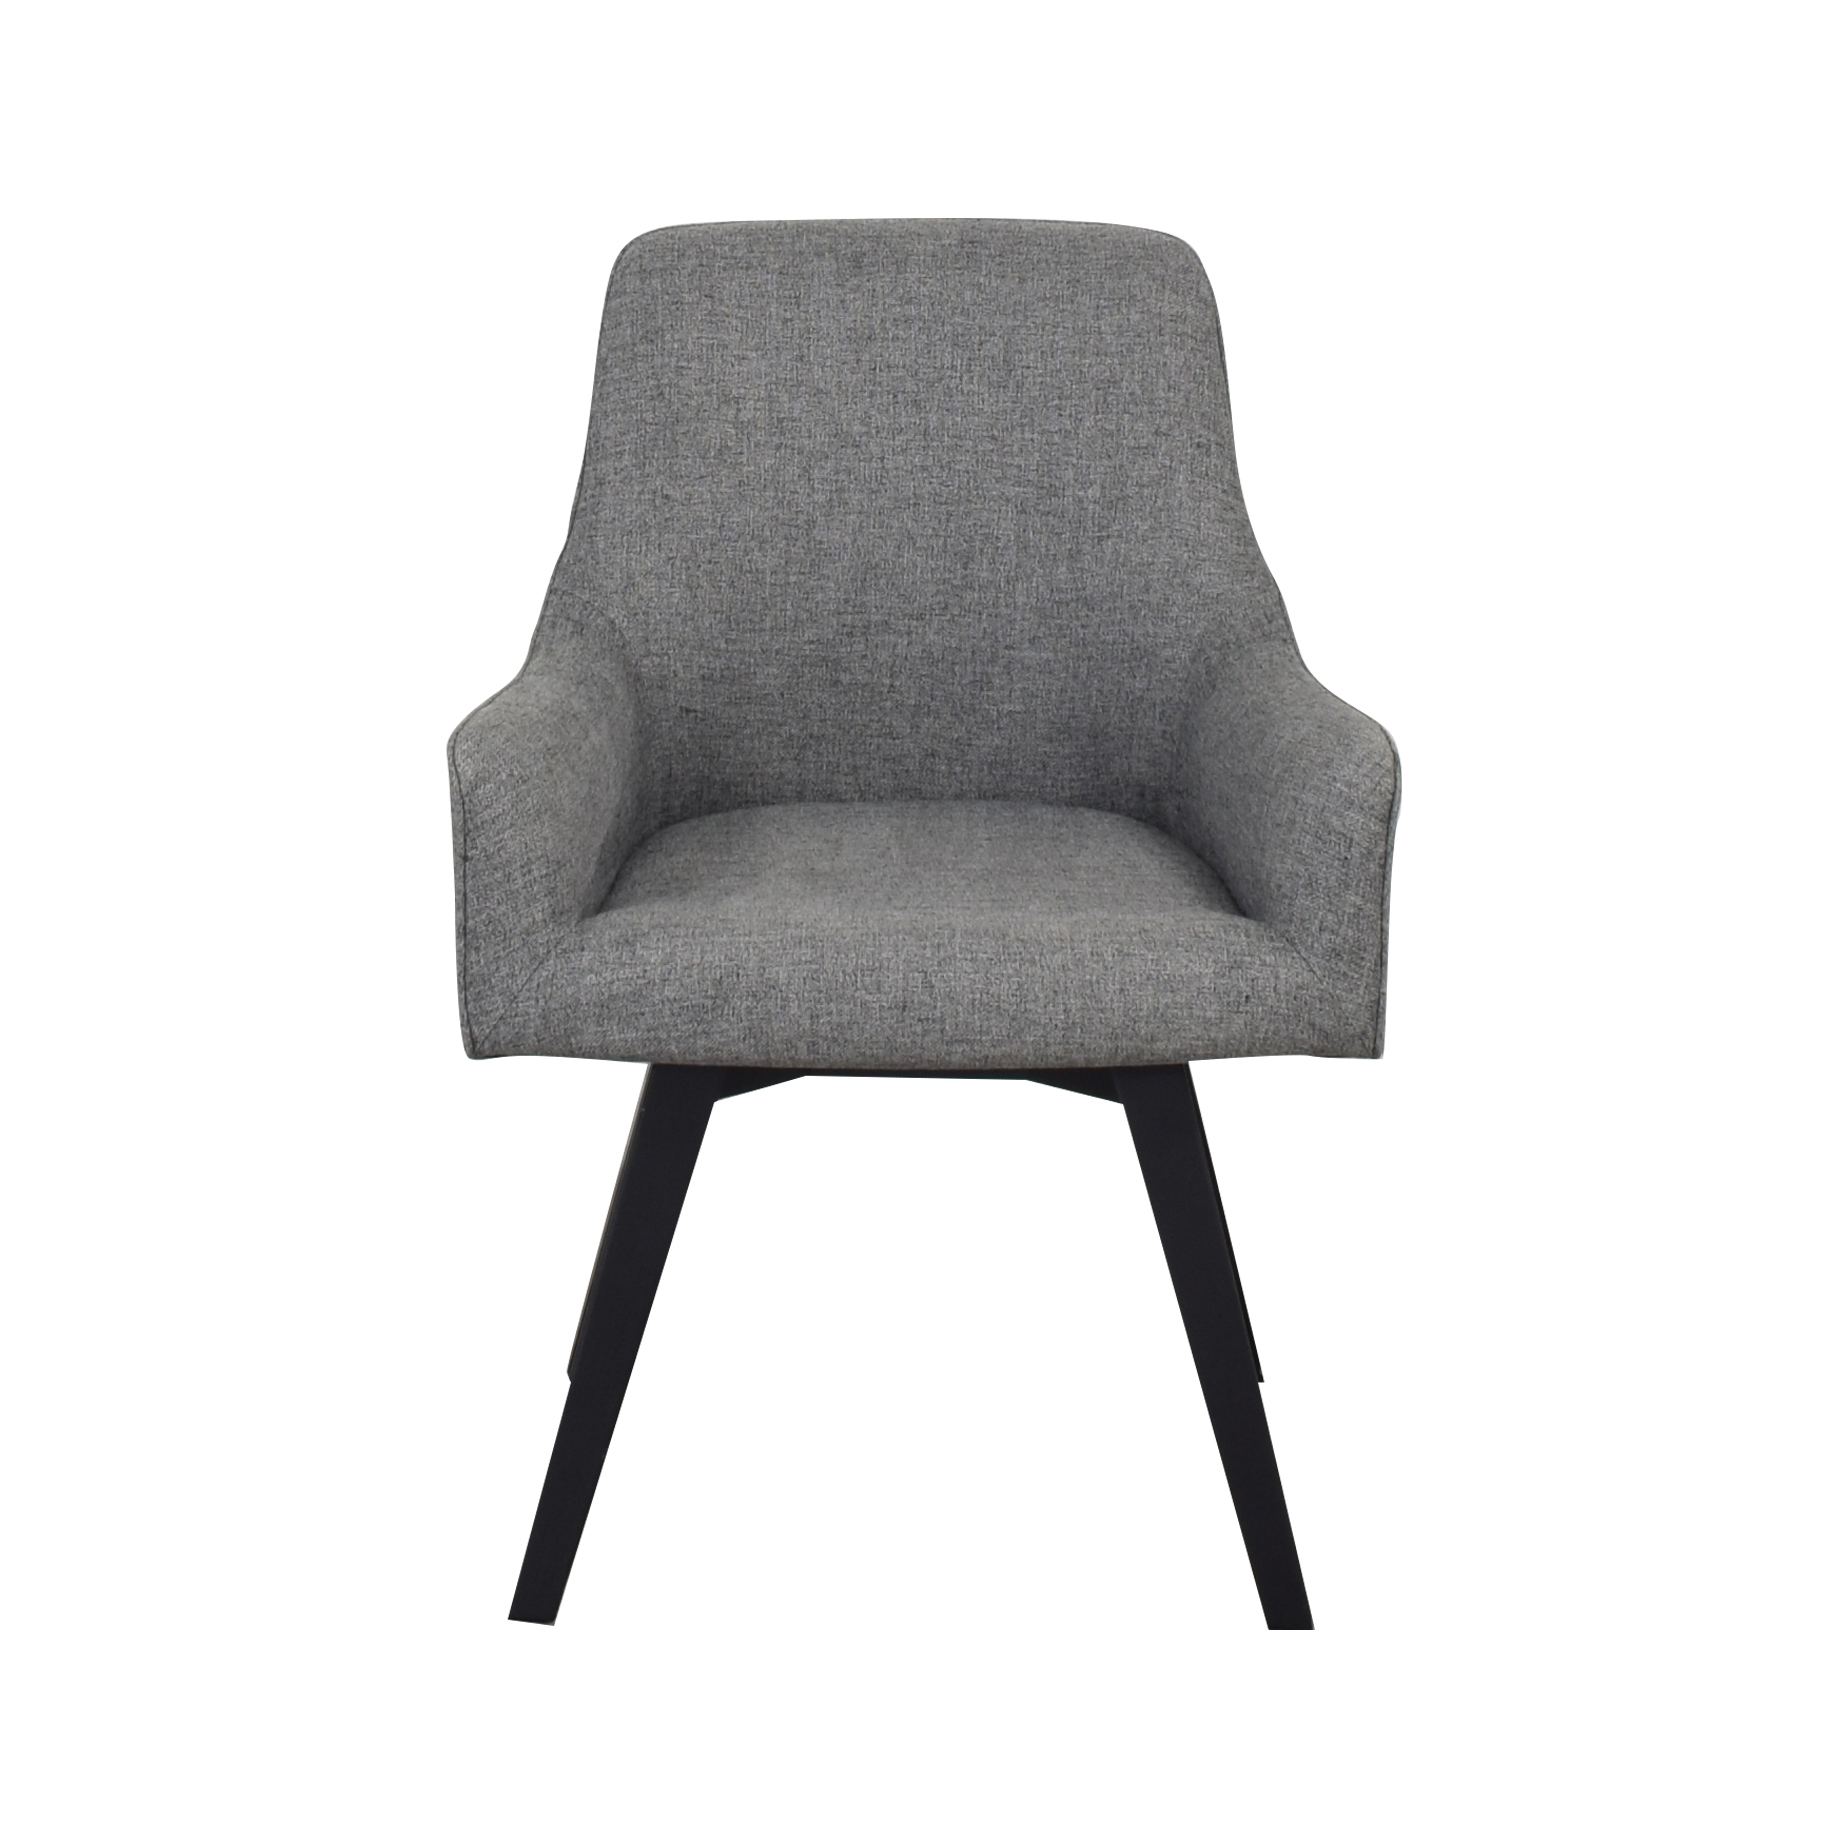 Crate & Barrel Harvey Swivel Armchair / Dining Chairs